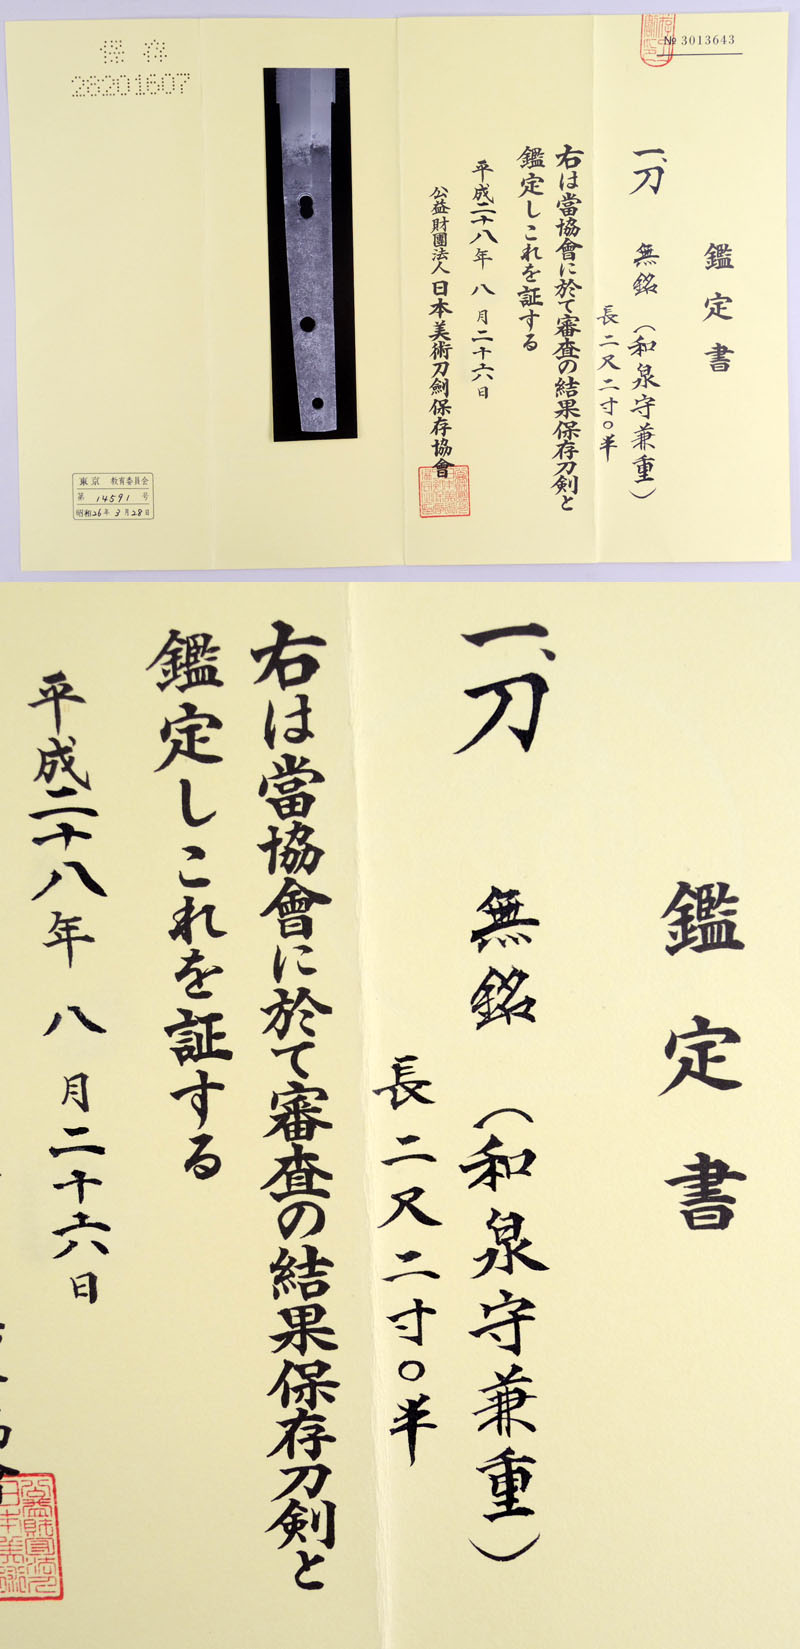 無銘(和泉守兼重) Picture of Certificate